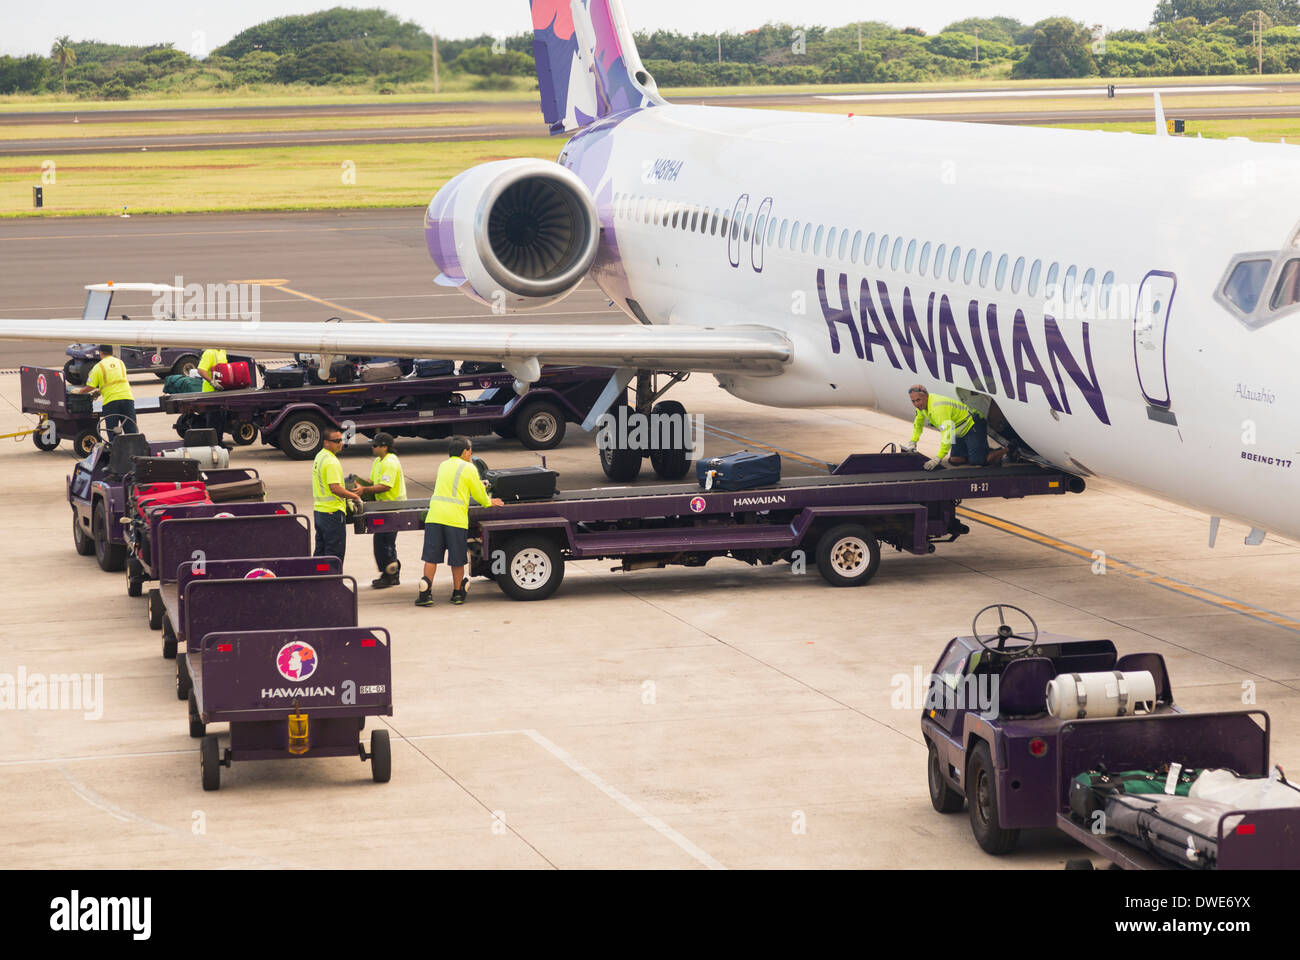 Hawaiian Airlines Boeing 717 being unloaded at Lihue terminal on island of Kauai in Hawaii, USA - Stock Image